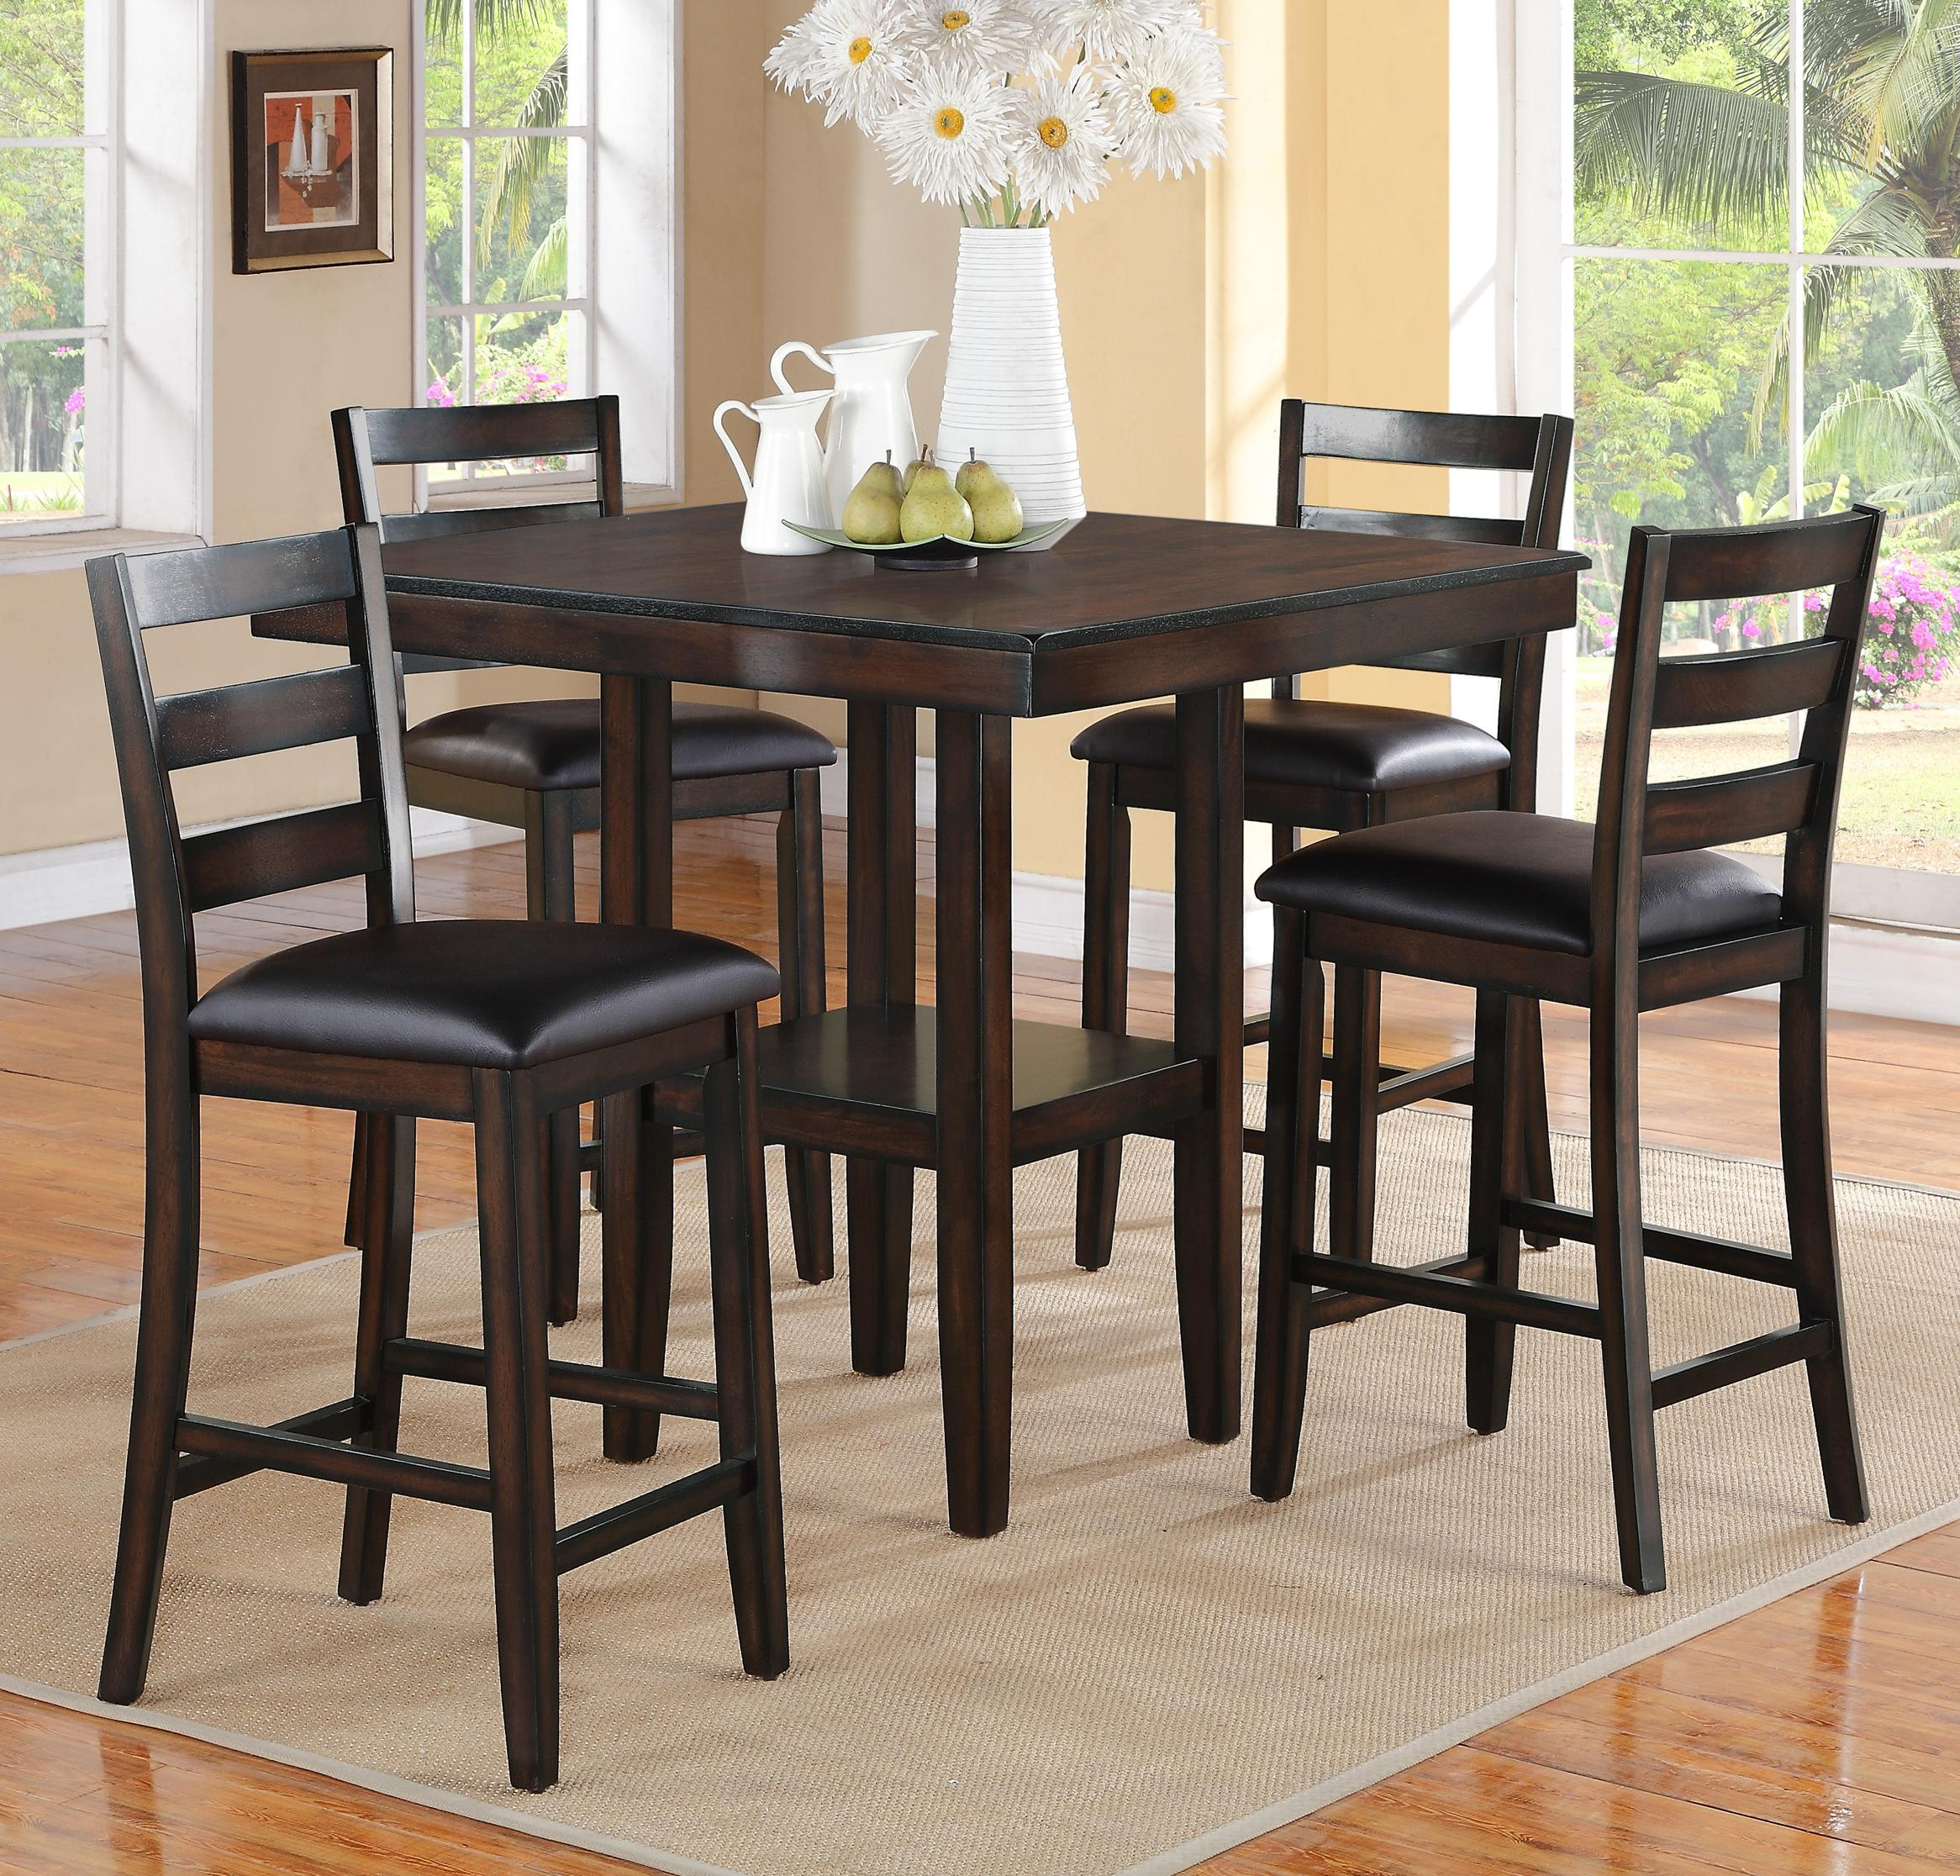 Crown Mark Tahoe 5 Piece Counter Height Table and Chairs Set - Item Number 2630Set & Crown Mark Tahoe 5 Piece Counter Height Table and Chairs Set ...